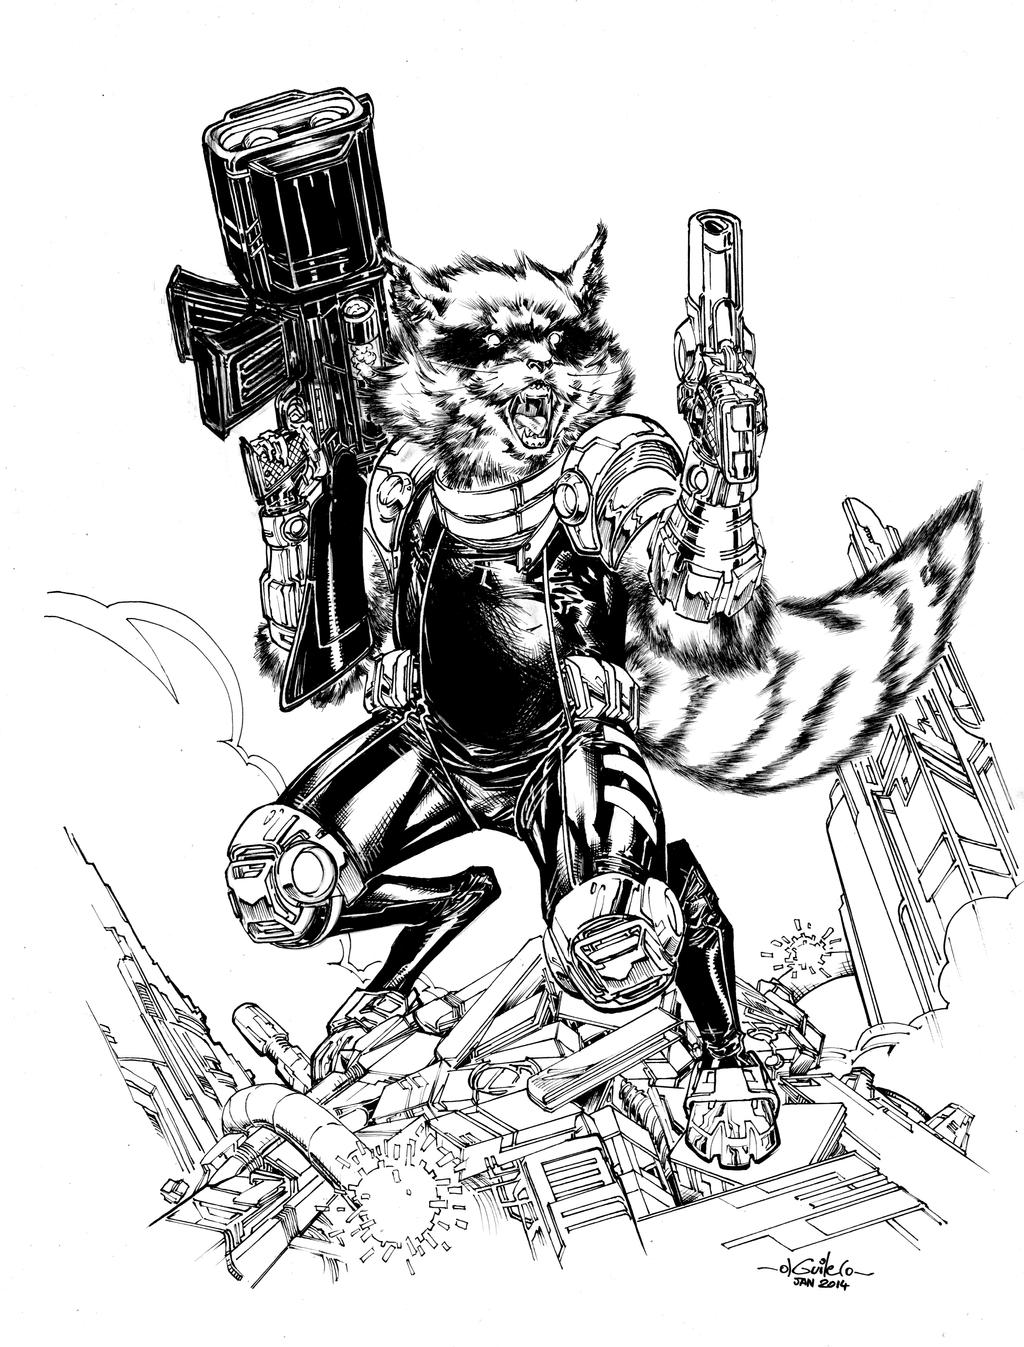 Star Lord And Rocket Raccoon By Timothygreenii On Deviantart: Rocket Raccoon By SpiderGuile On DeviantArt